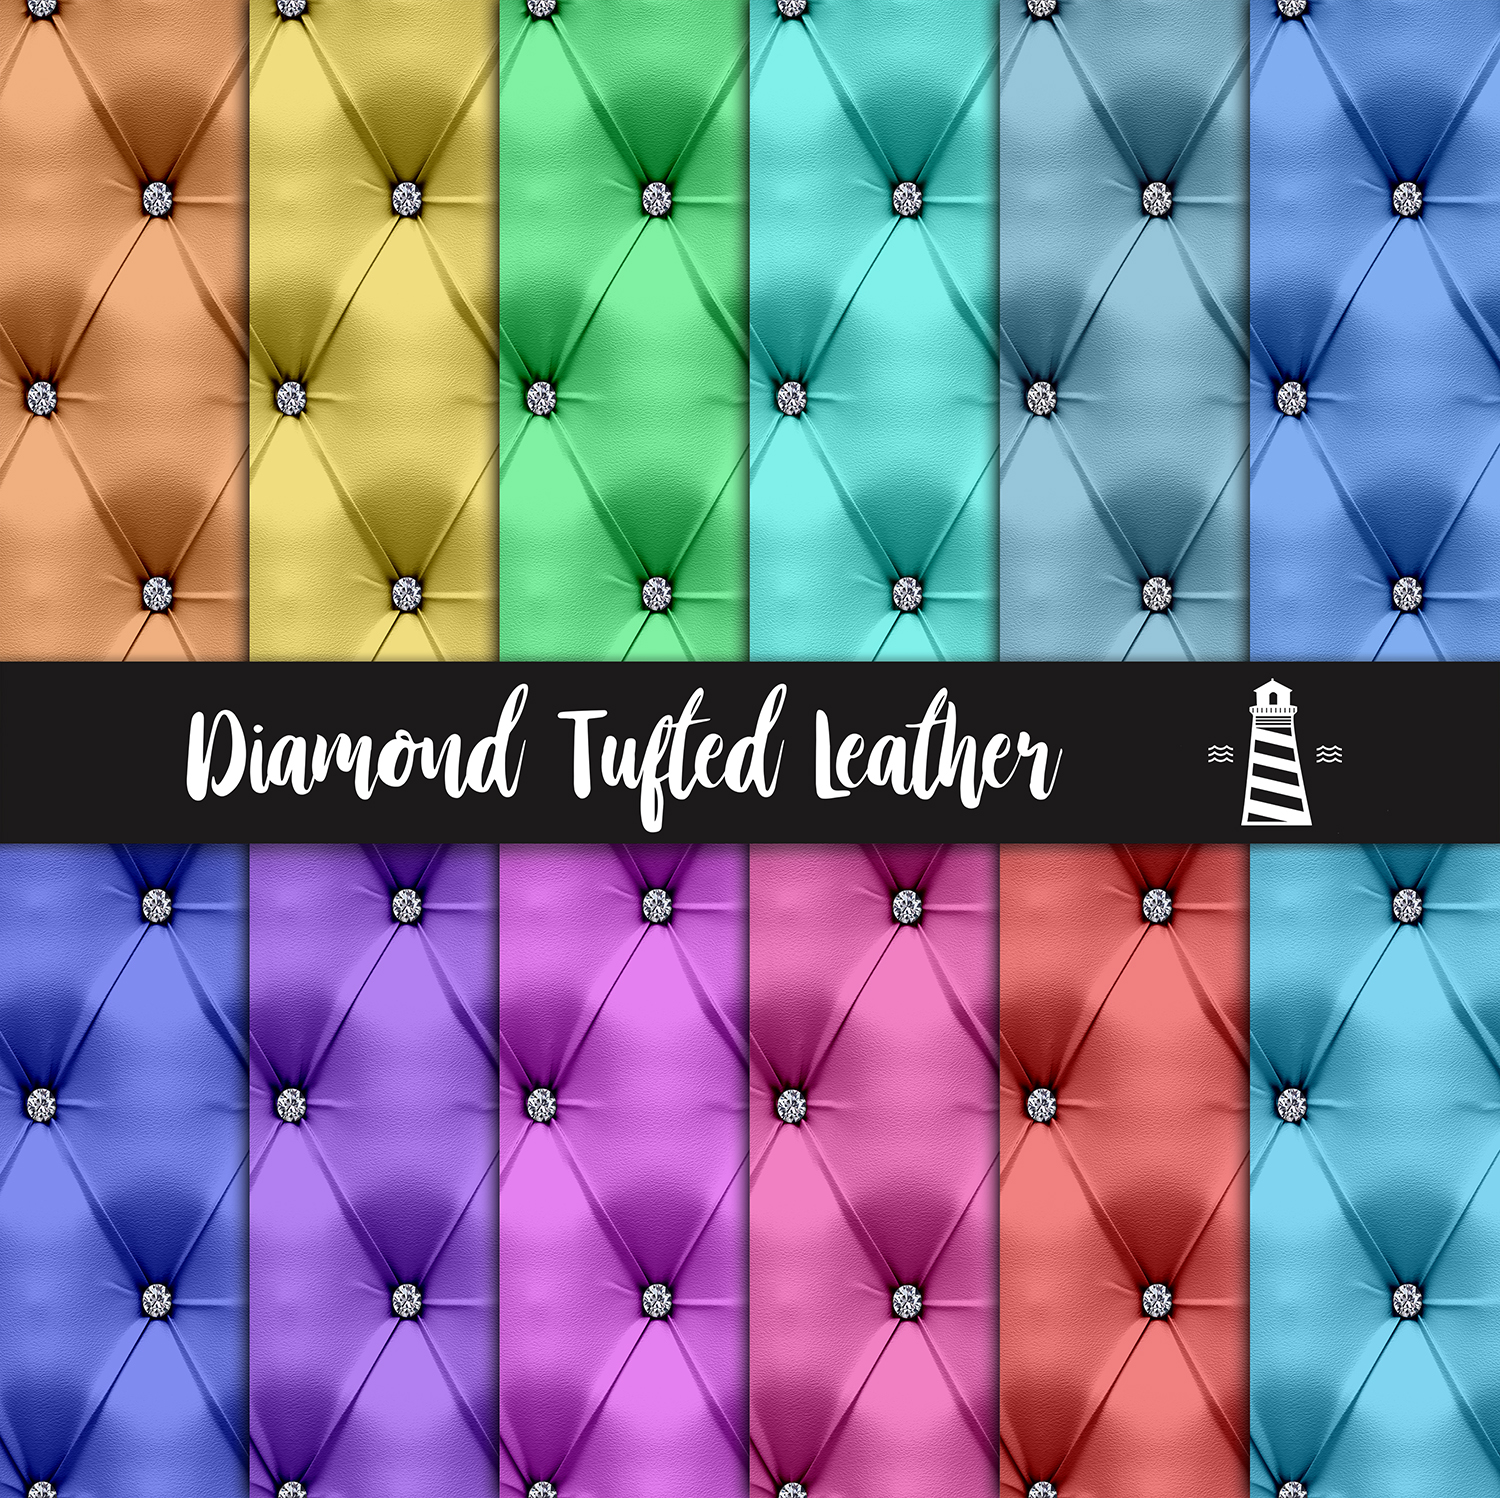 Diamond Tufted Leather Textures example image 2